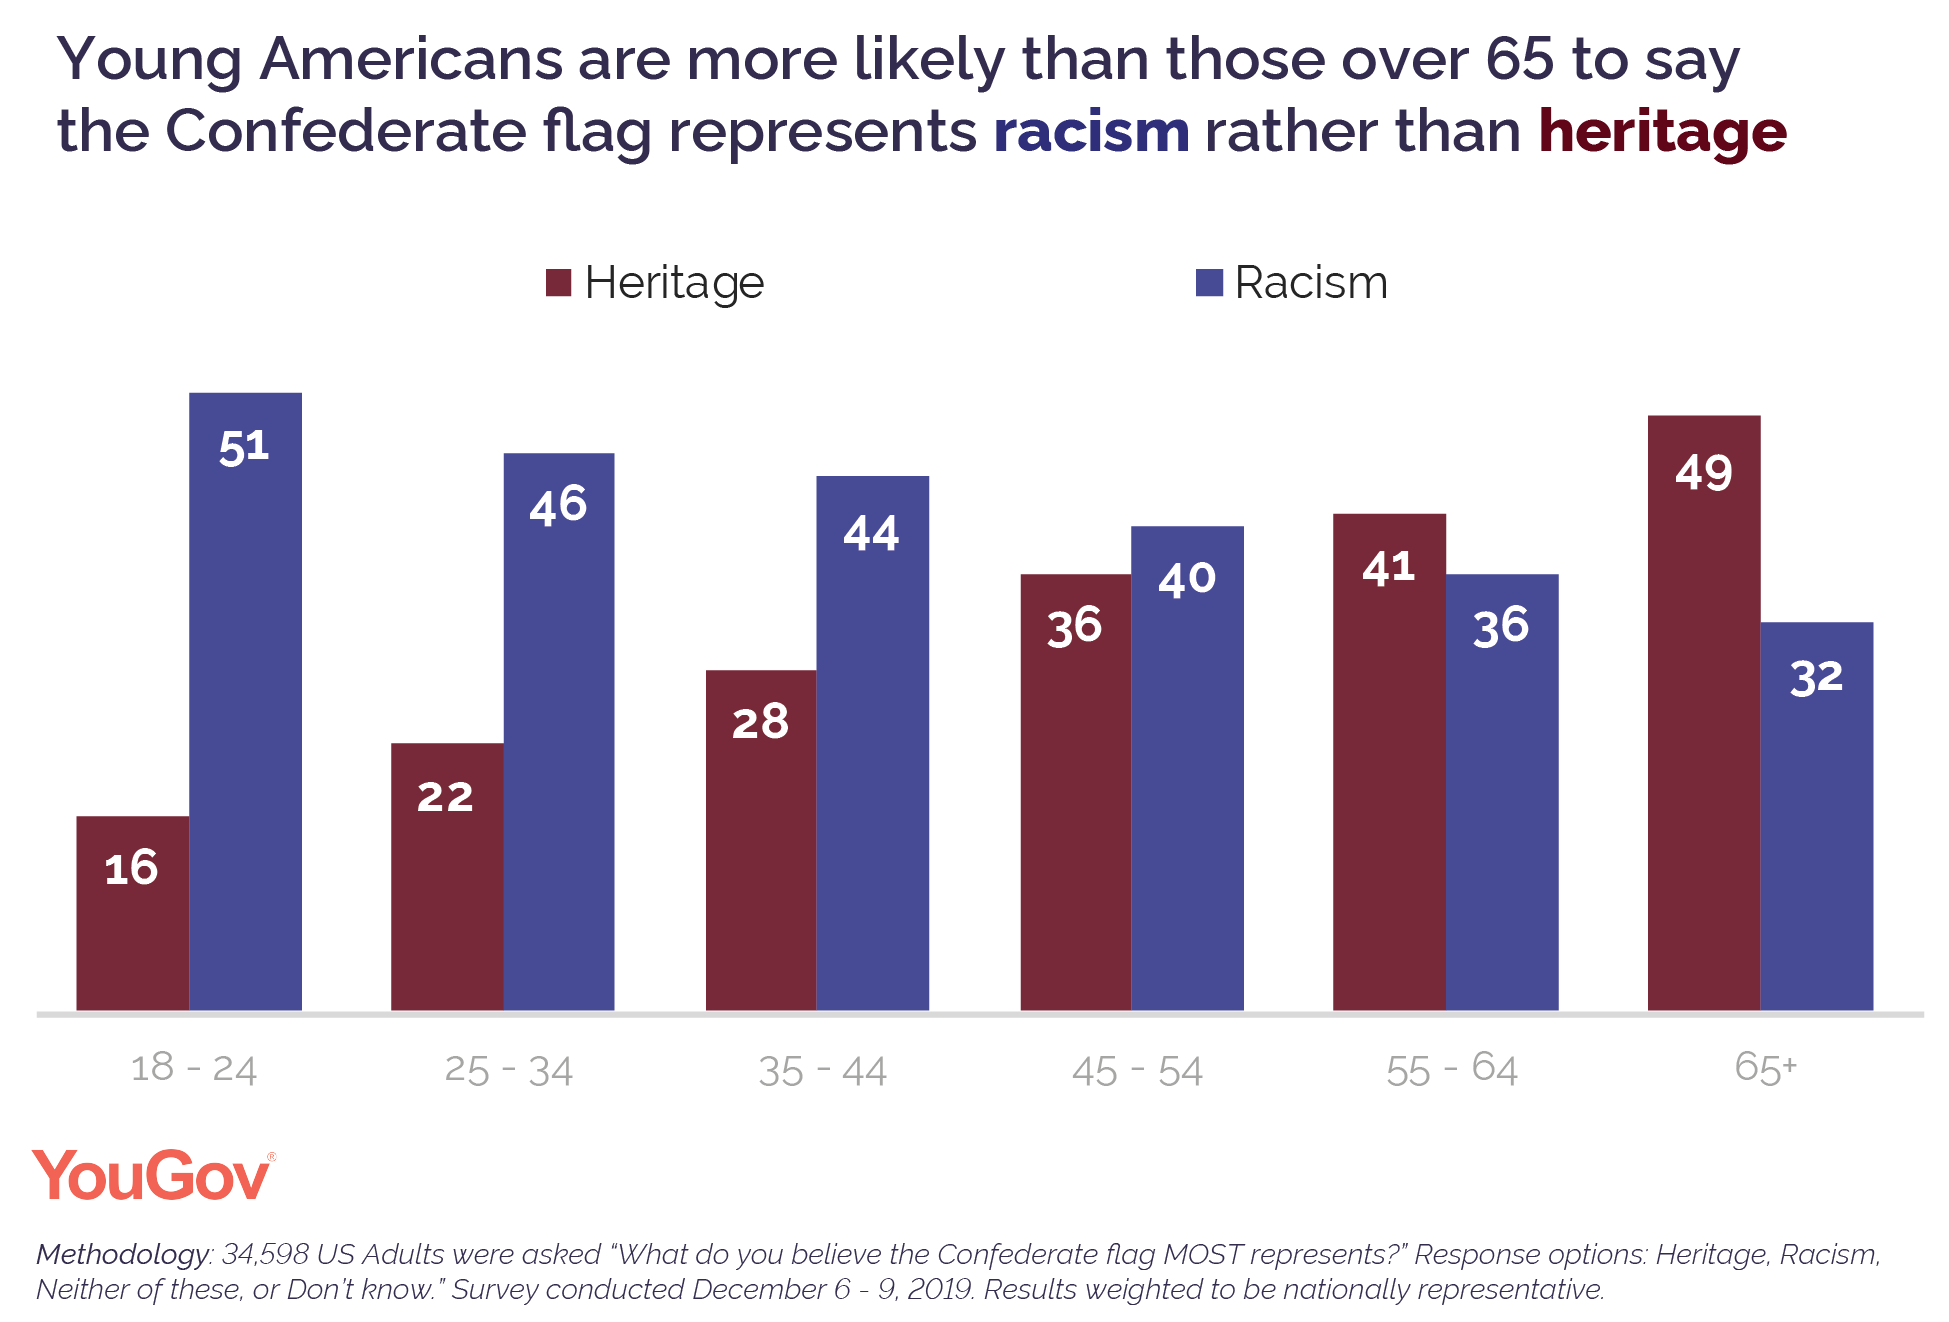 Young Americans are more likely than those over 65 to say the Confederate flag represents racism over heritage